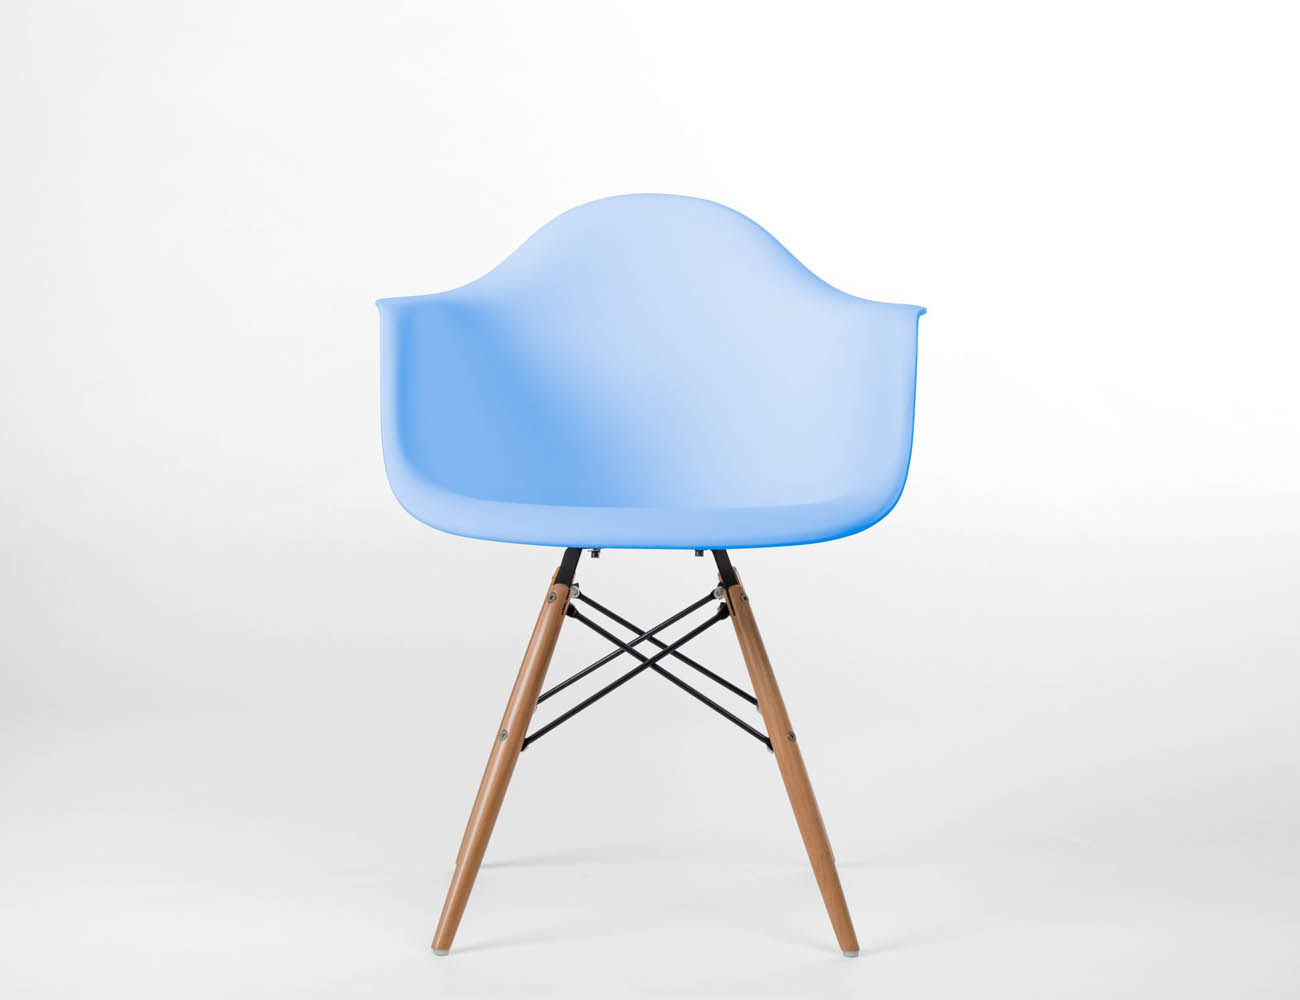 Wonderful Eames Molded Plastic Armchair · Eames Molded Plastic Armchair